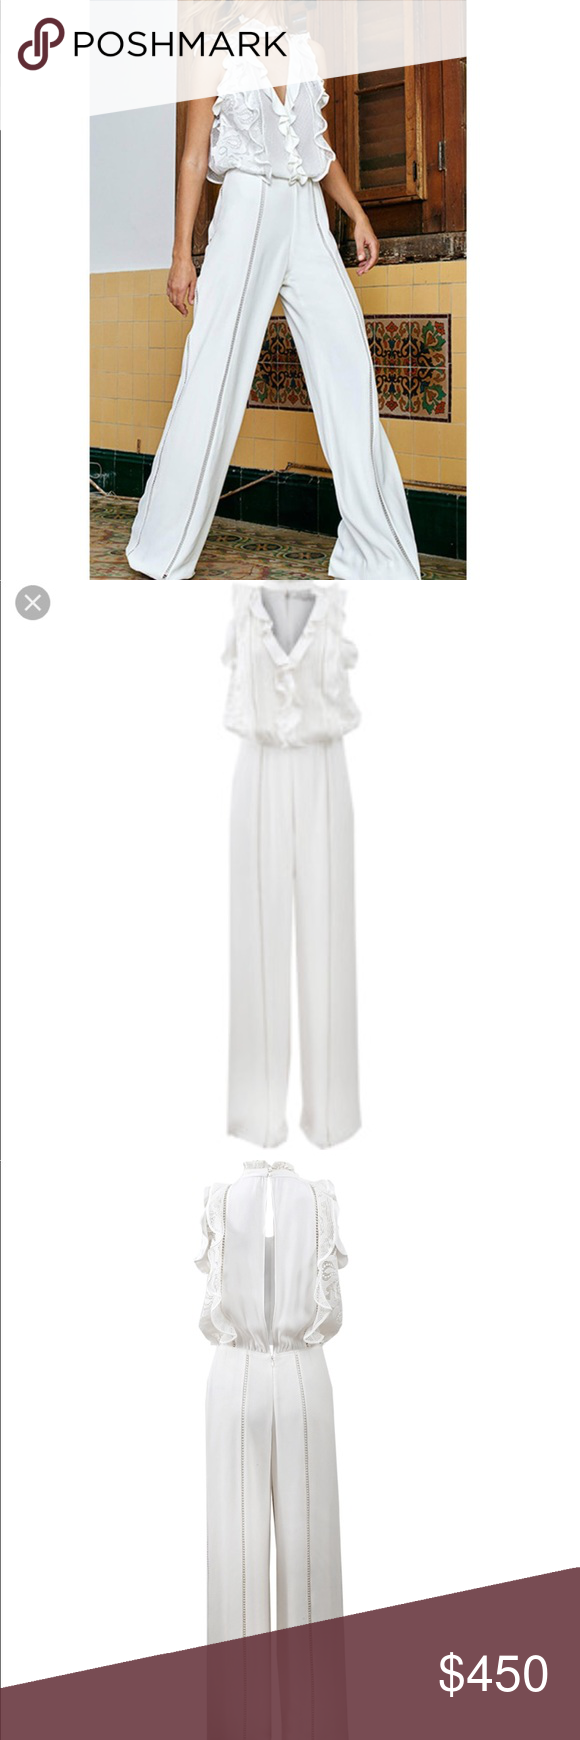 5d55783975e1 Alexis Rasika white jumpsuit Beautiful Alexis ruffle white jumpsuit size  medium! Sold out exclusive worn only once! Alexis Other